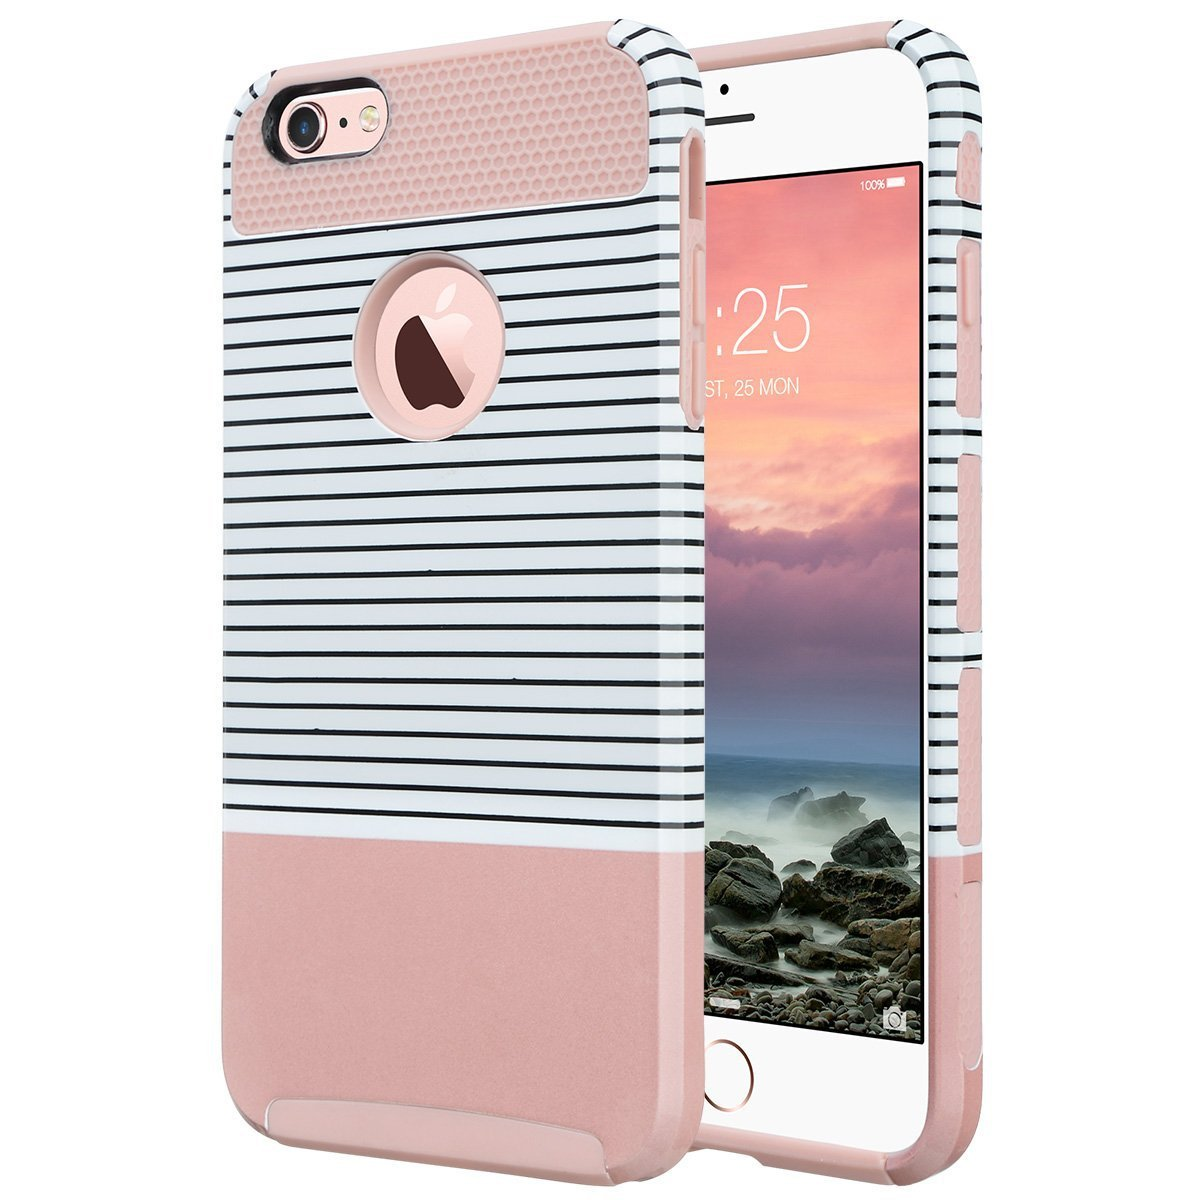 ULAK iPhone 6 Case, ULAK Hybrid Slim Case With Hard PC (Rose Gold/Pink/Minimal Stripes)